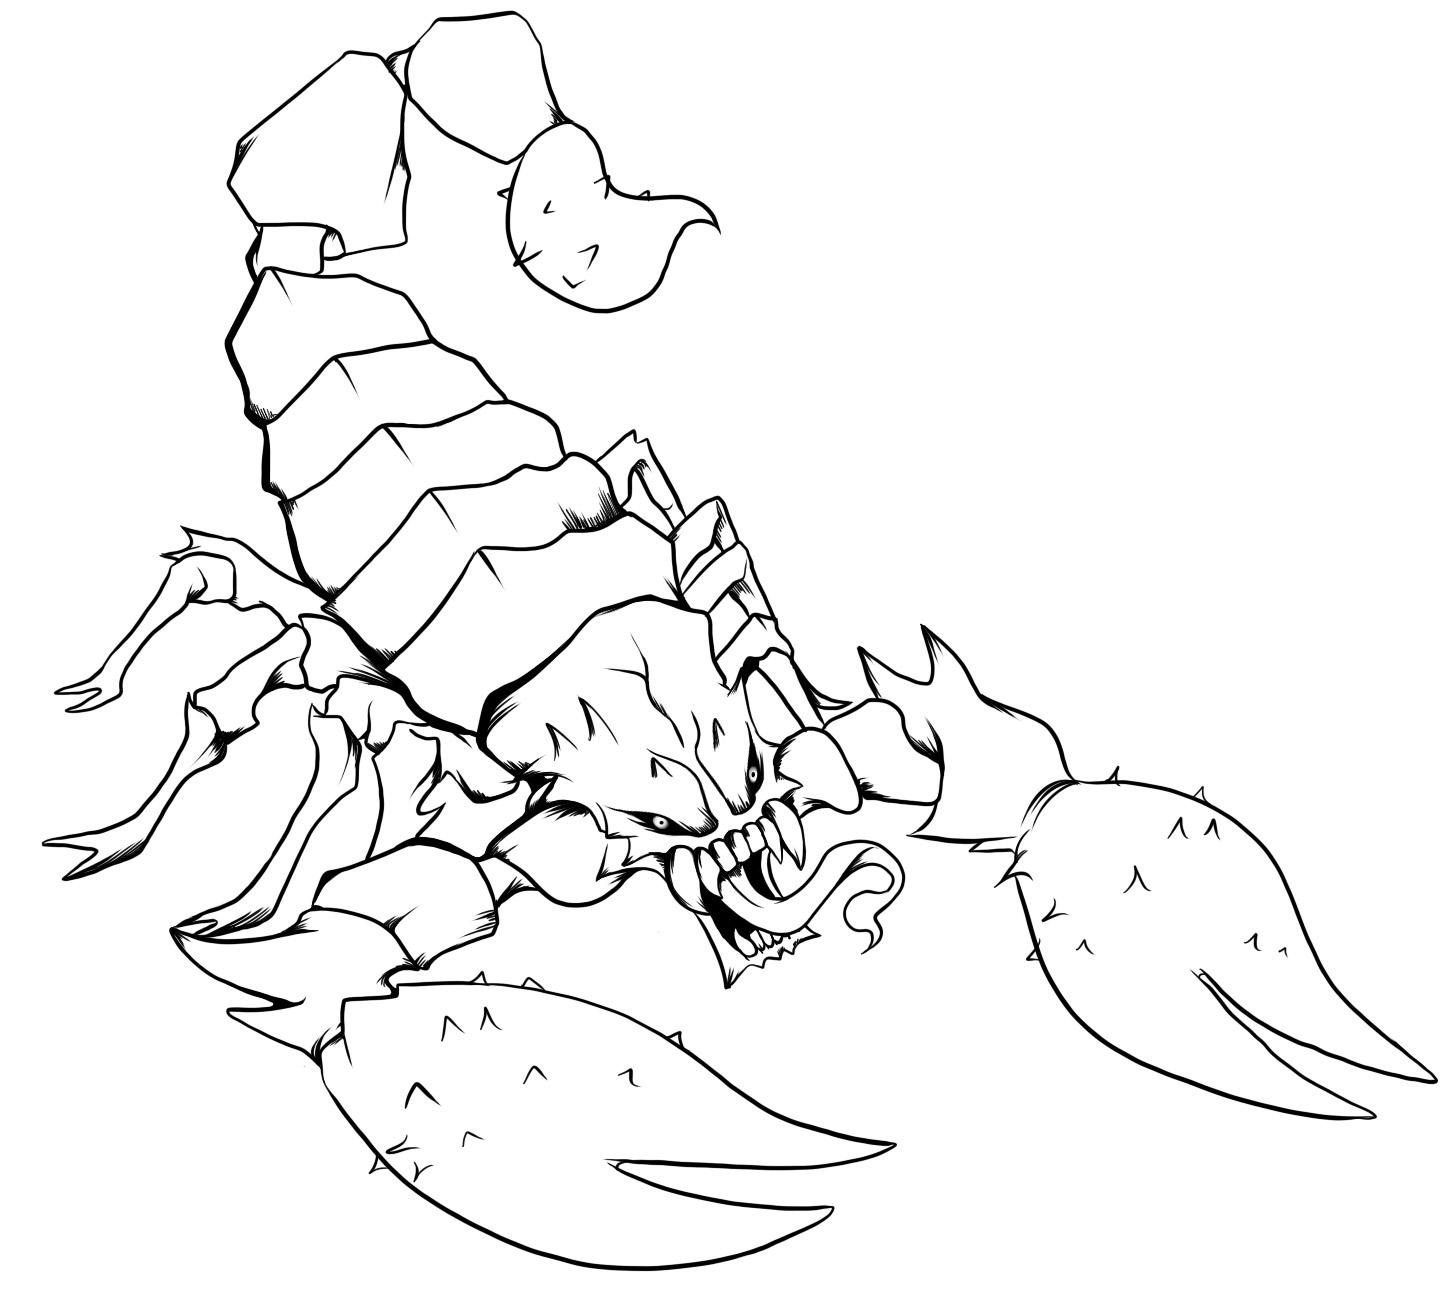 Drawn scorpion coloring page Scorpion Kids Pictures Coloring Pages